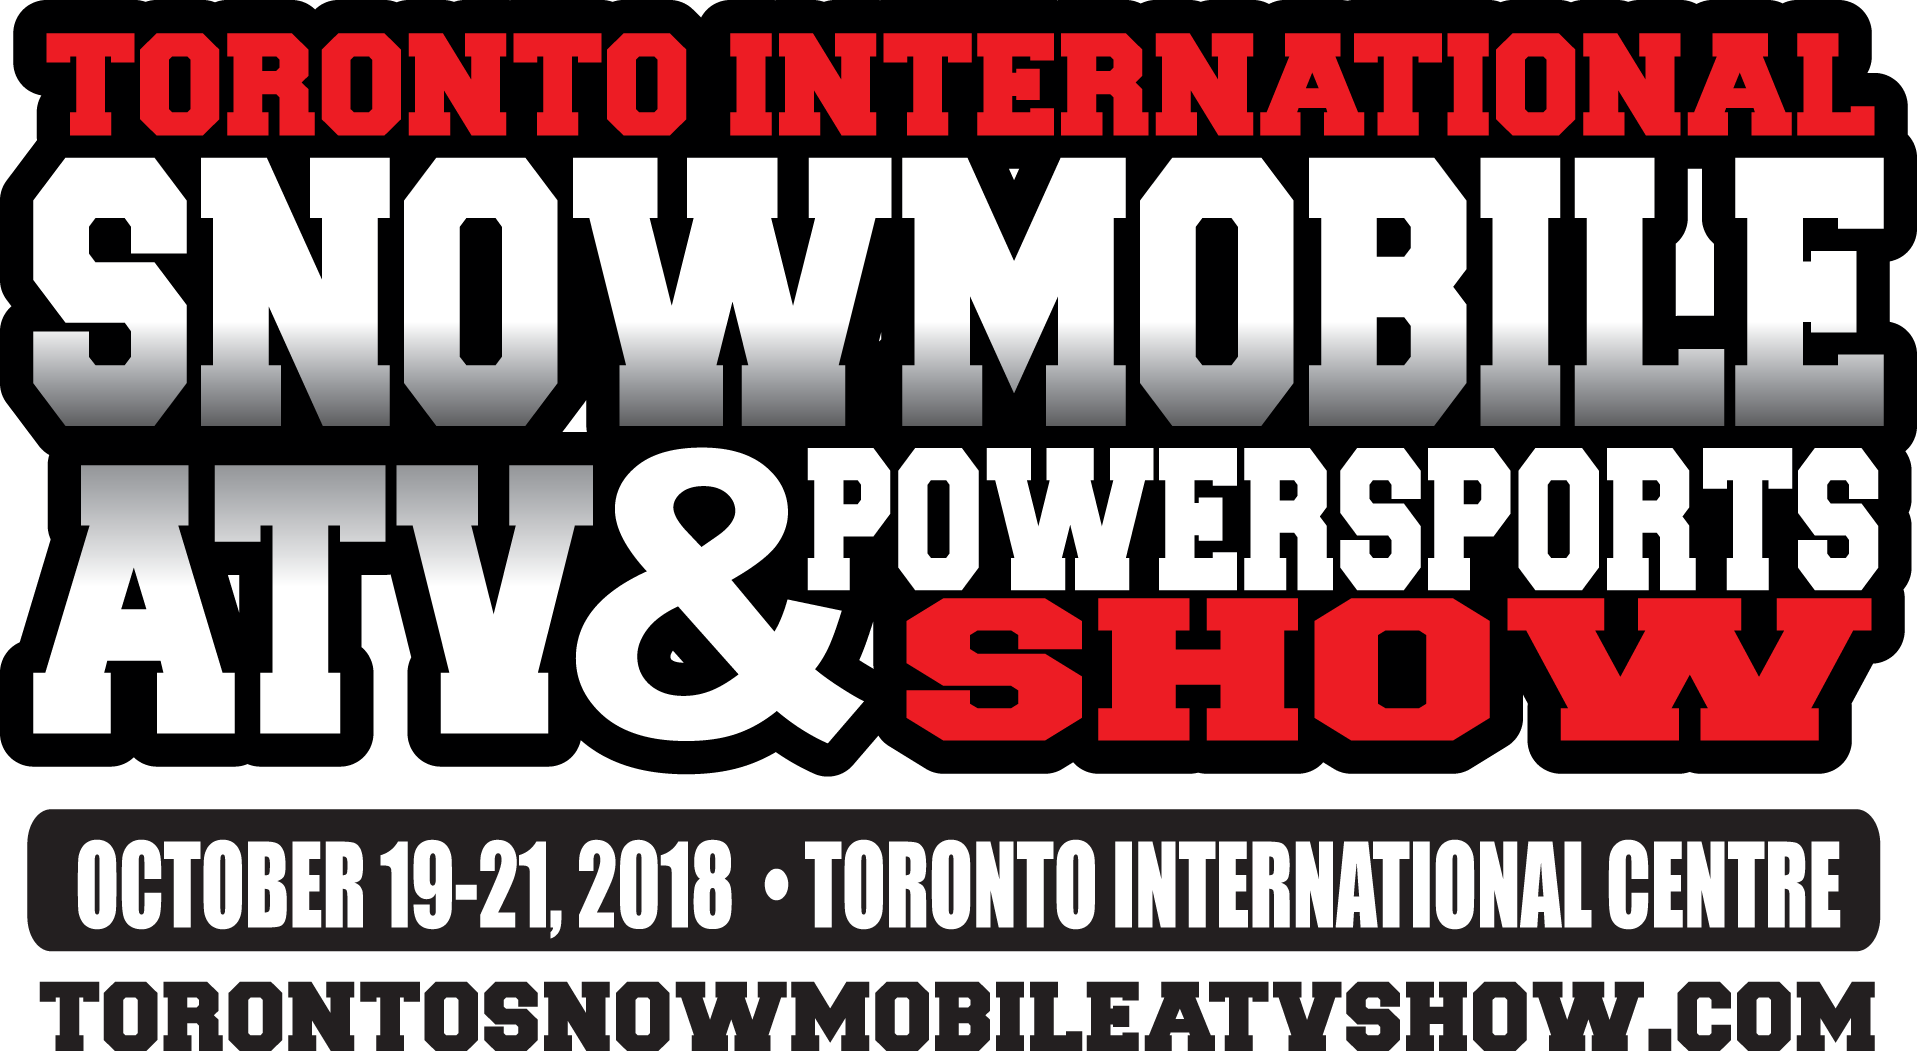 31st Annual Toronto International Snowmobile, ATV & Powersports Show